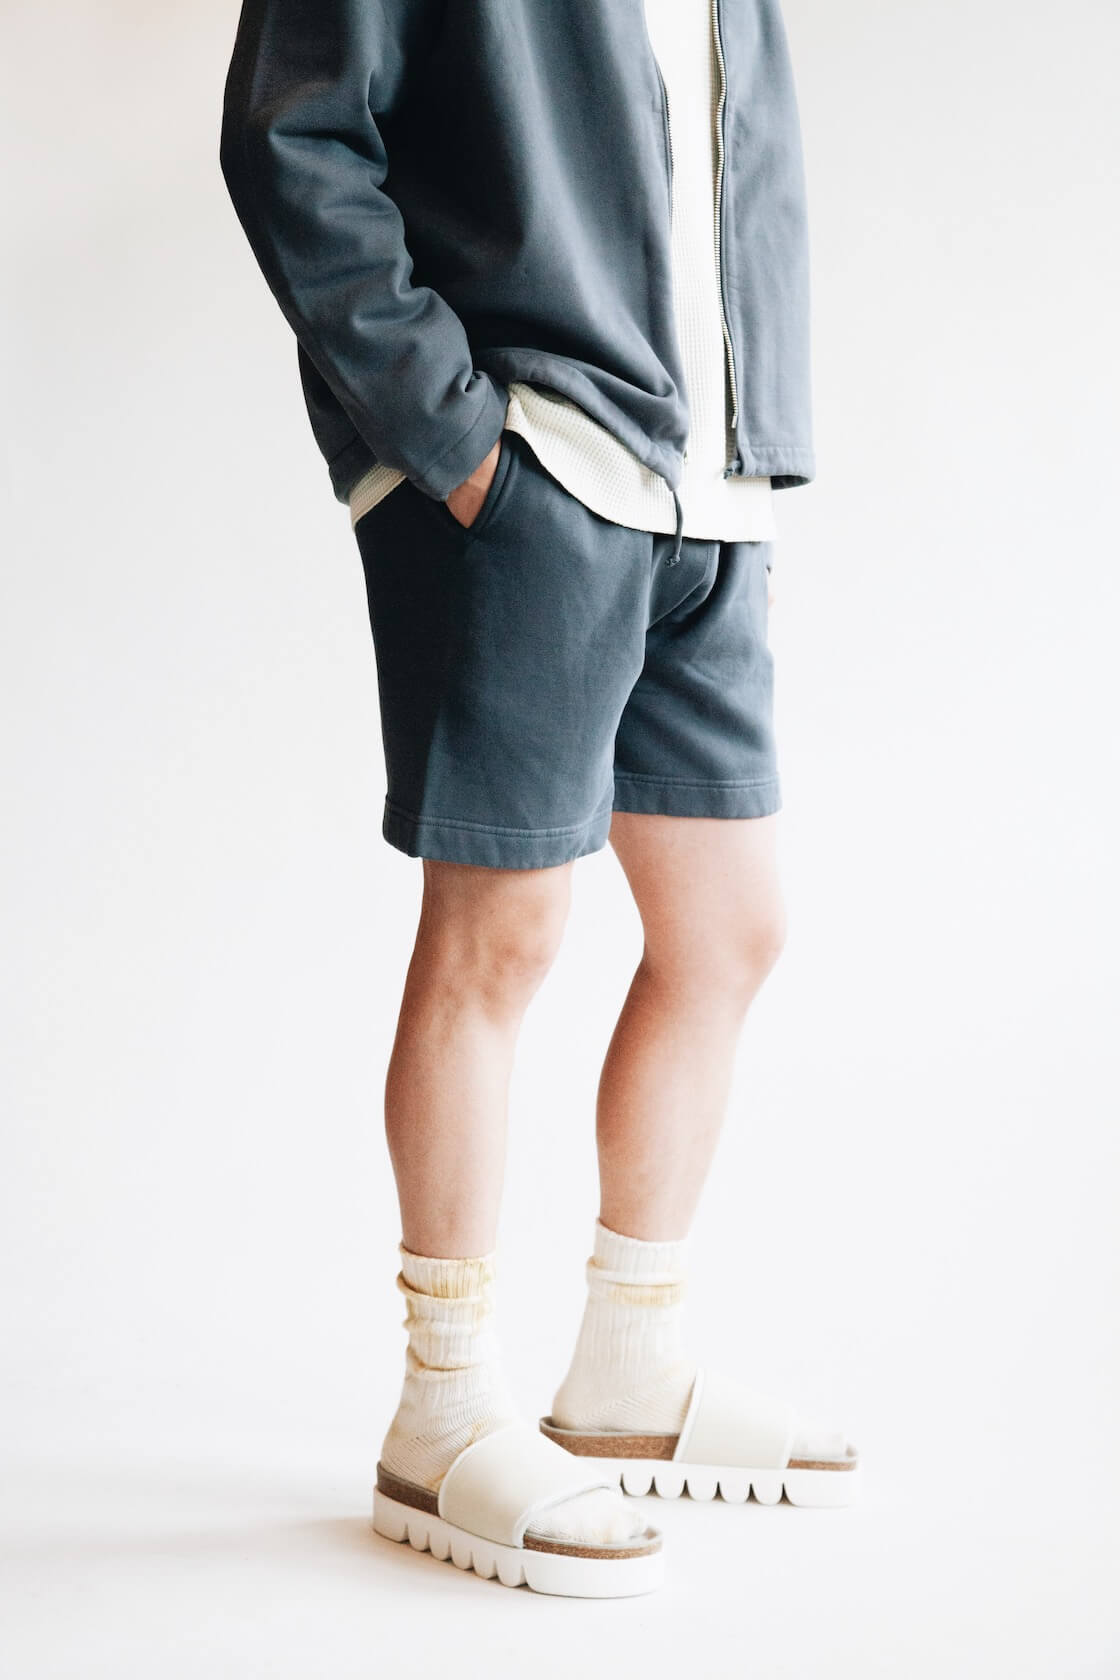 Zip Cardigan from Lady White Co., Cropped Raglan Thermal from Lady White Co., Sweat Shorts from Lady White Co. and Caterpillar sandals from Hender Scheme on body